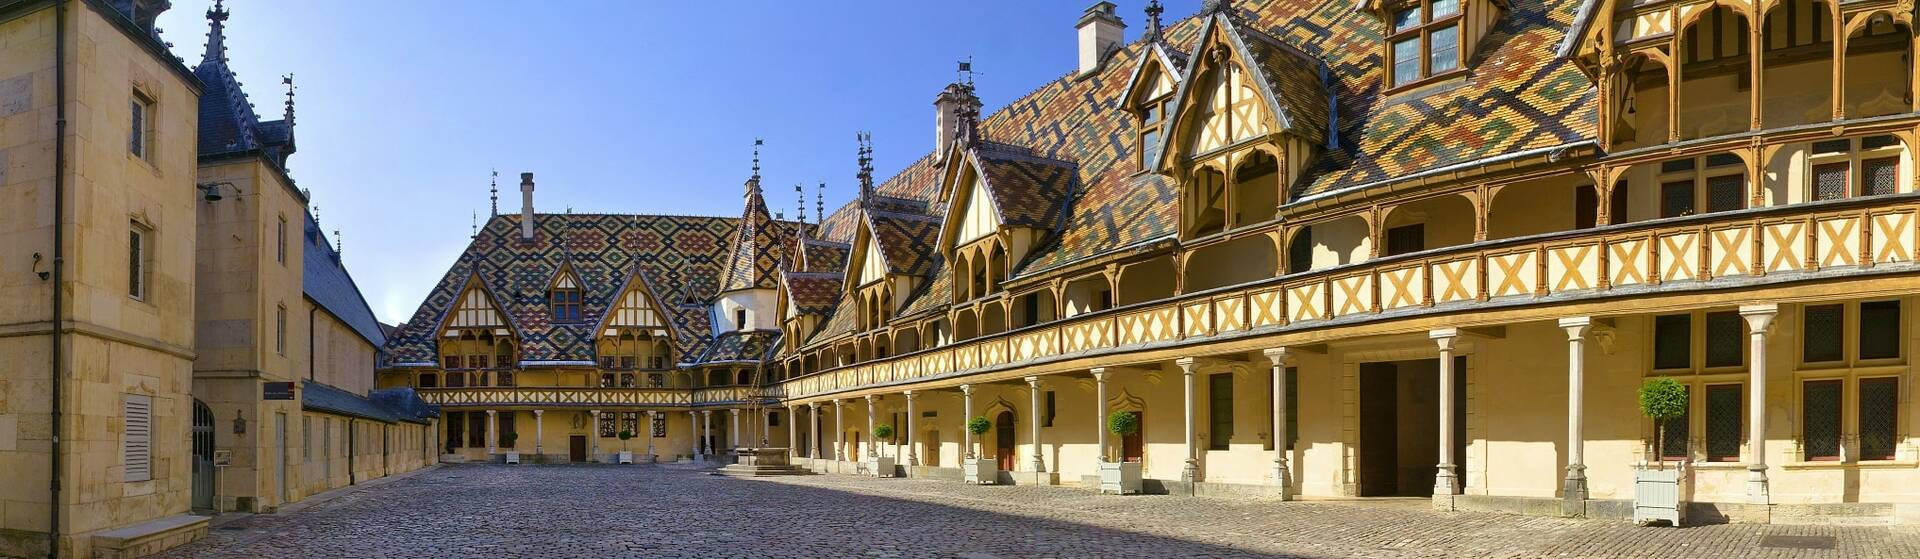 hospices de beaune h tel dieu museum in beaune